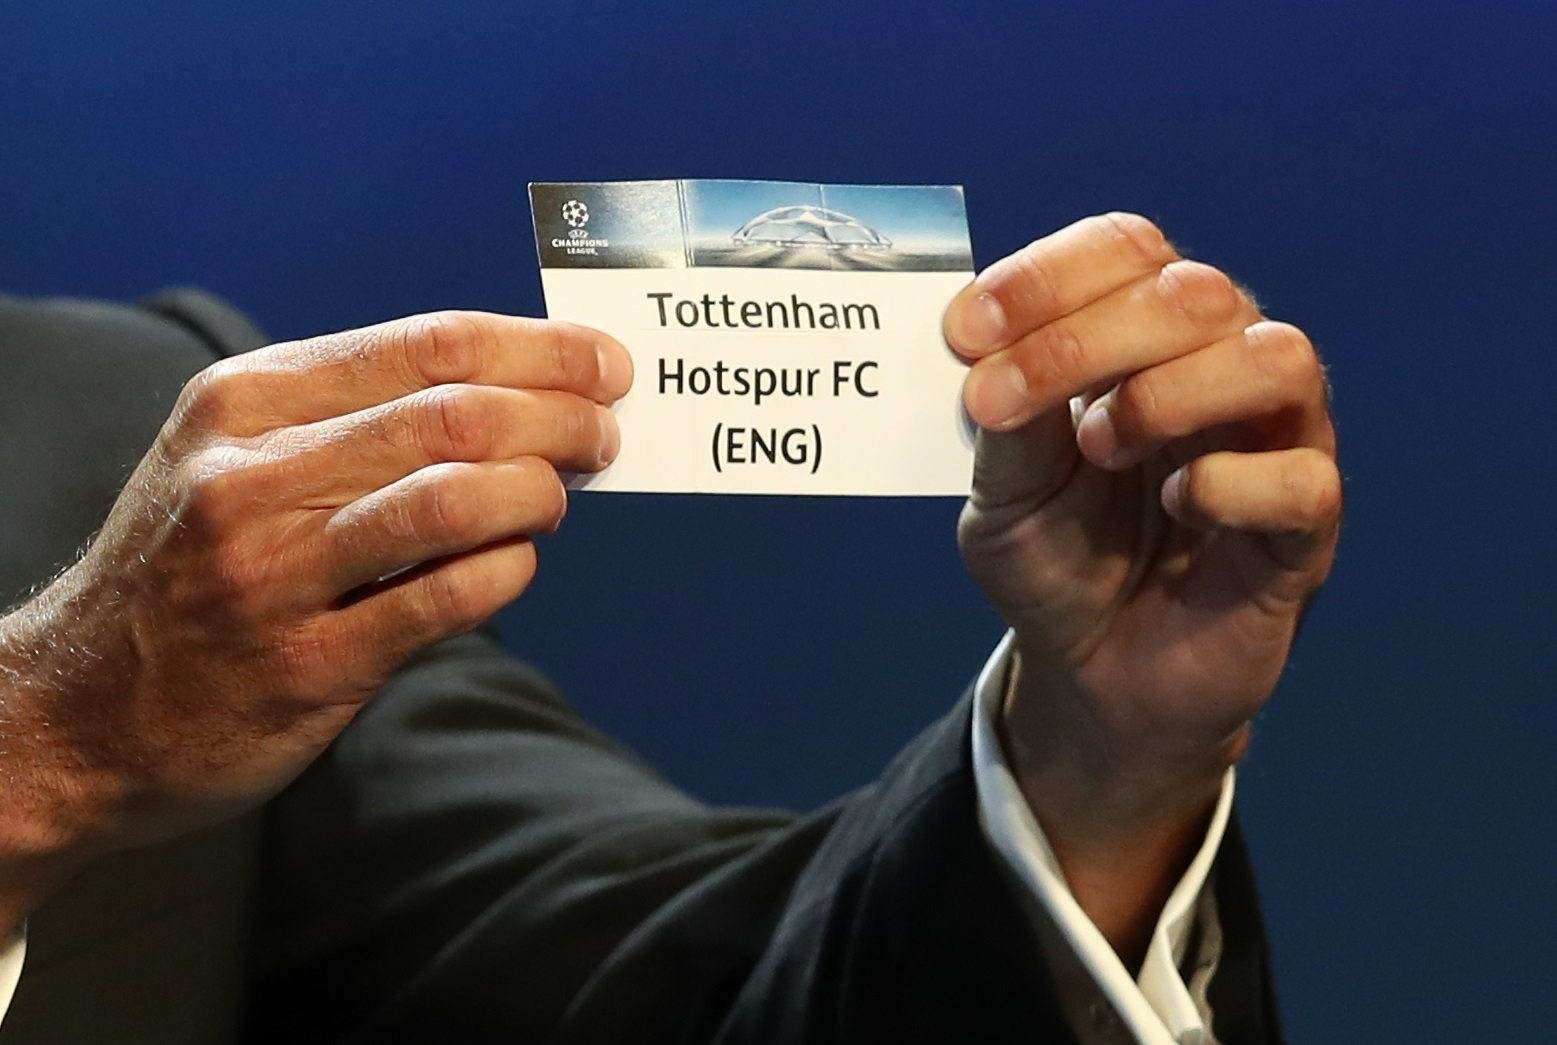 Spurs to meet Real Madrid in the Champions League — Tottenham Hotspur